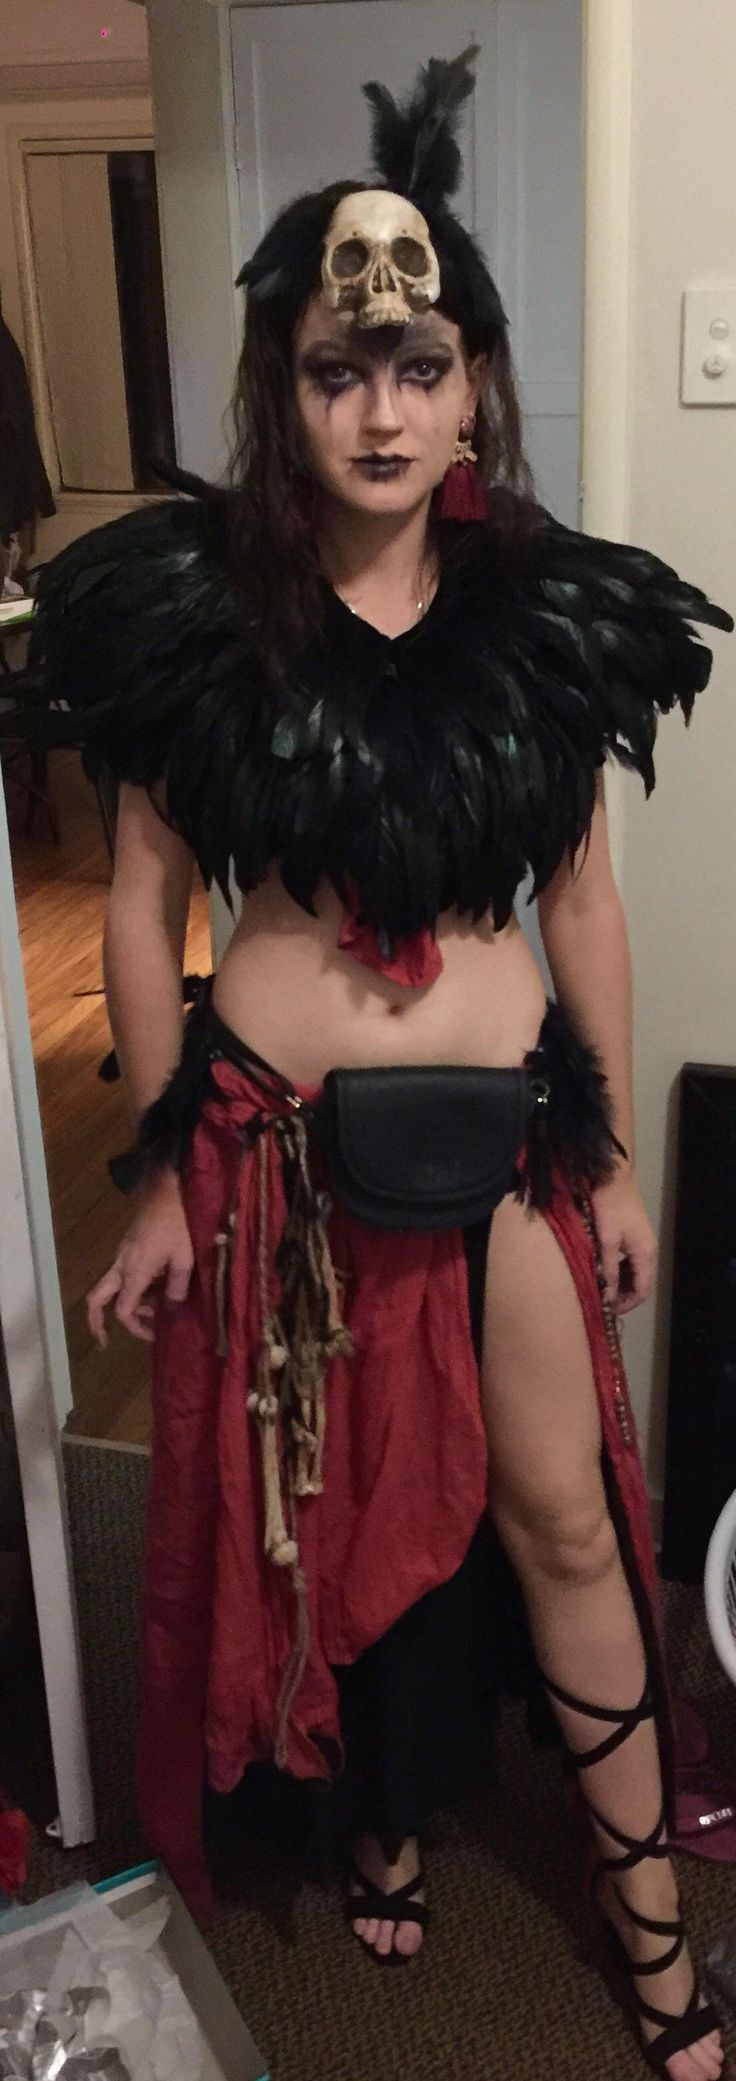 My (handmade for the most part) voodoo witch doctor costume https://i.redd.it/pac257g1rquz.jpg